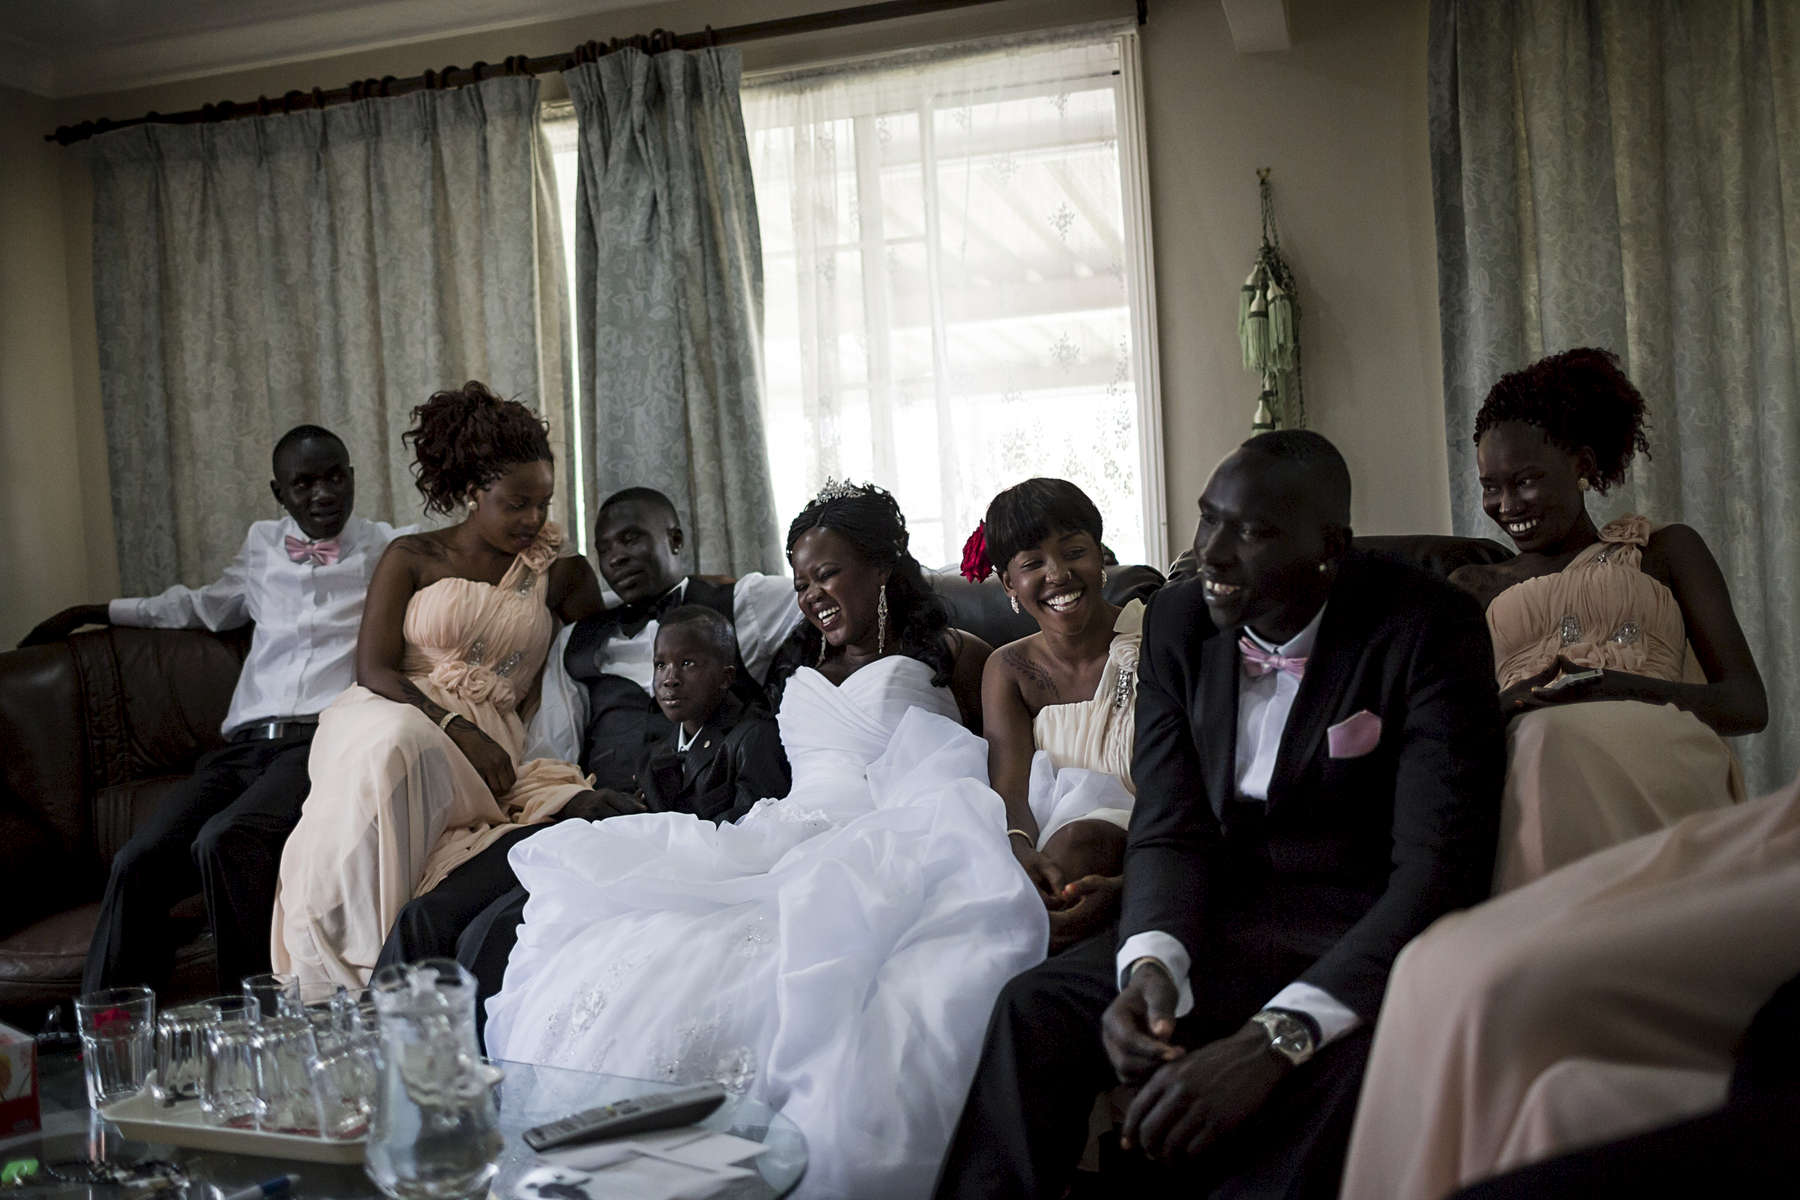 In December 2013 bride and groom Achol (centre) and Marial (left of bride) along with their bridal party take a brief rest after the wedding ceremony and before the reception. Weddings are an important part of adulthood and cultural life for Australia's South Sudanese community. Amongst the Dinka and Nuer communities in Australia it is still very common for a bride price to be paid by the groom and his family to the wives family. A separate wedding the photographer documented in early 2015 $65,000 AUD was agreed upon by the families to be paid as the bride price.